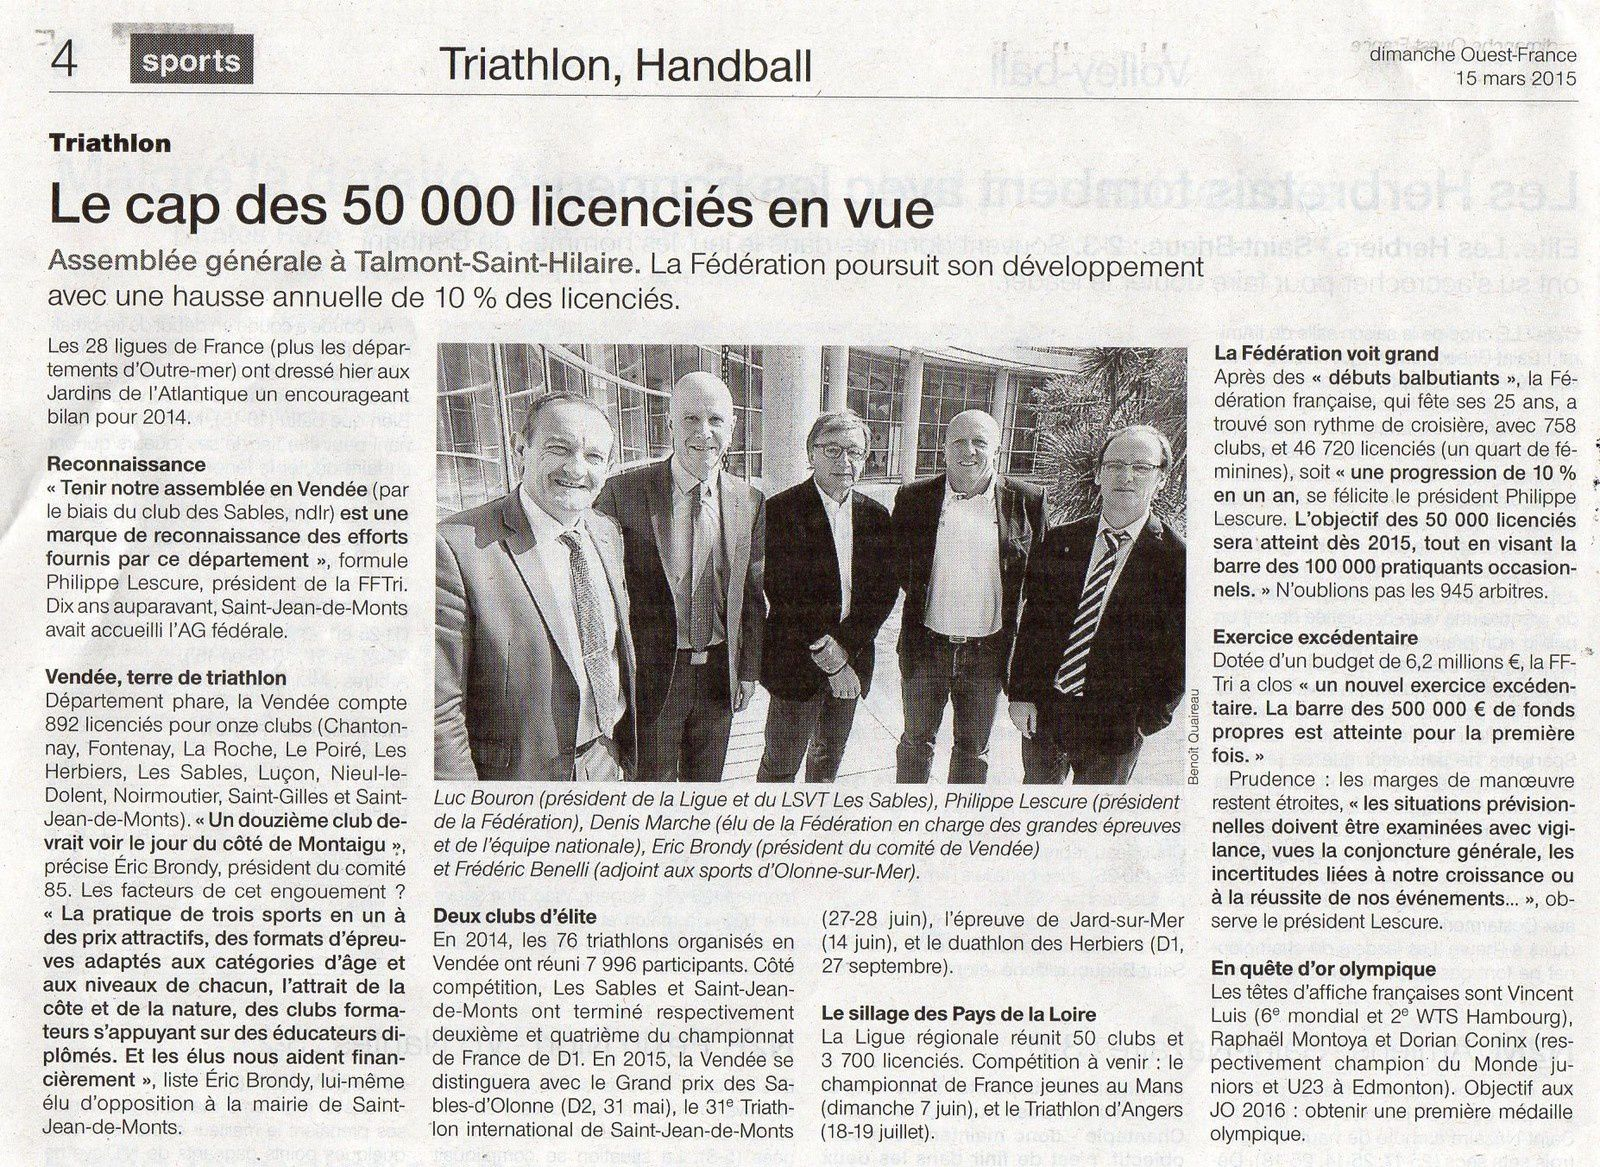 OUEST-FRANCE SPORTS 15 MARS 2015